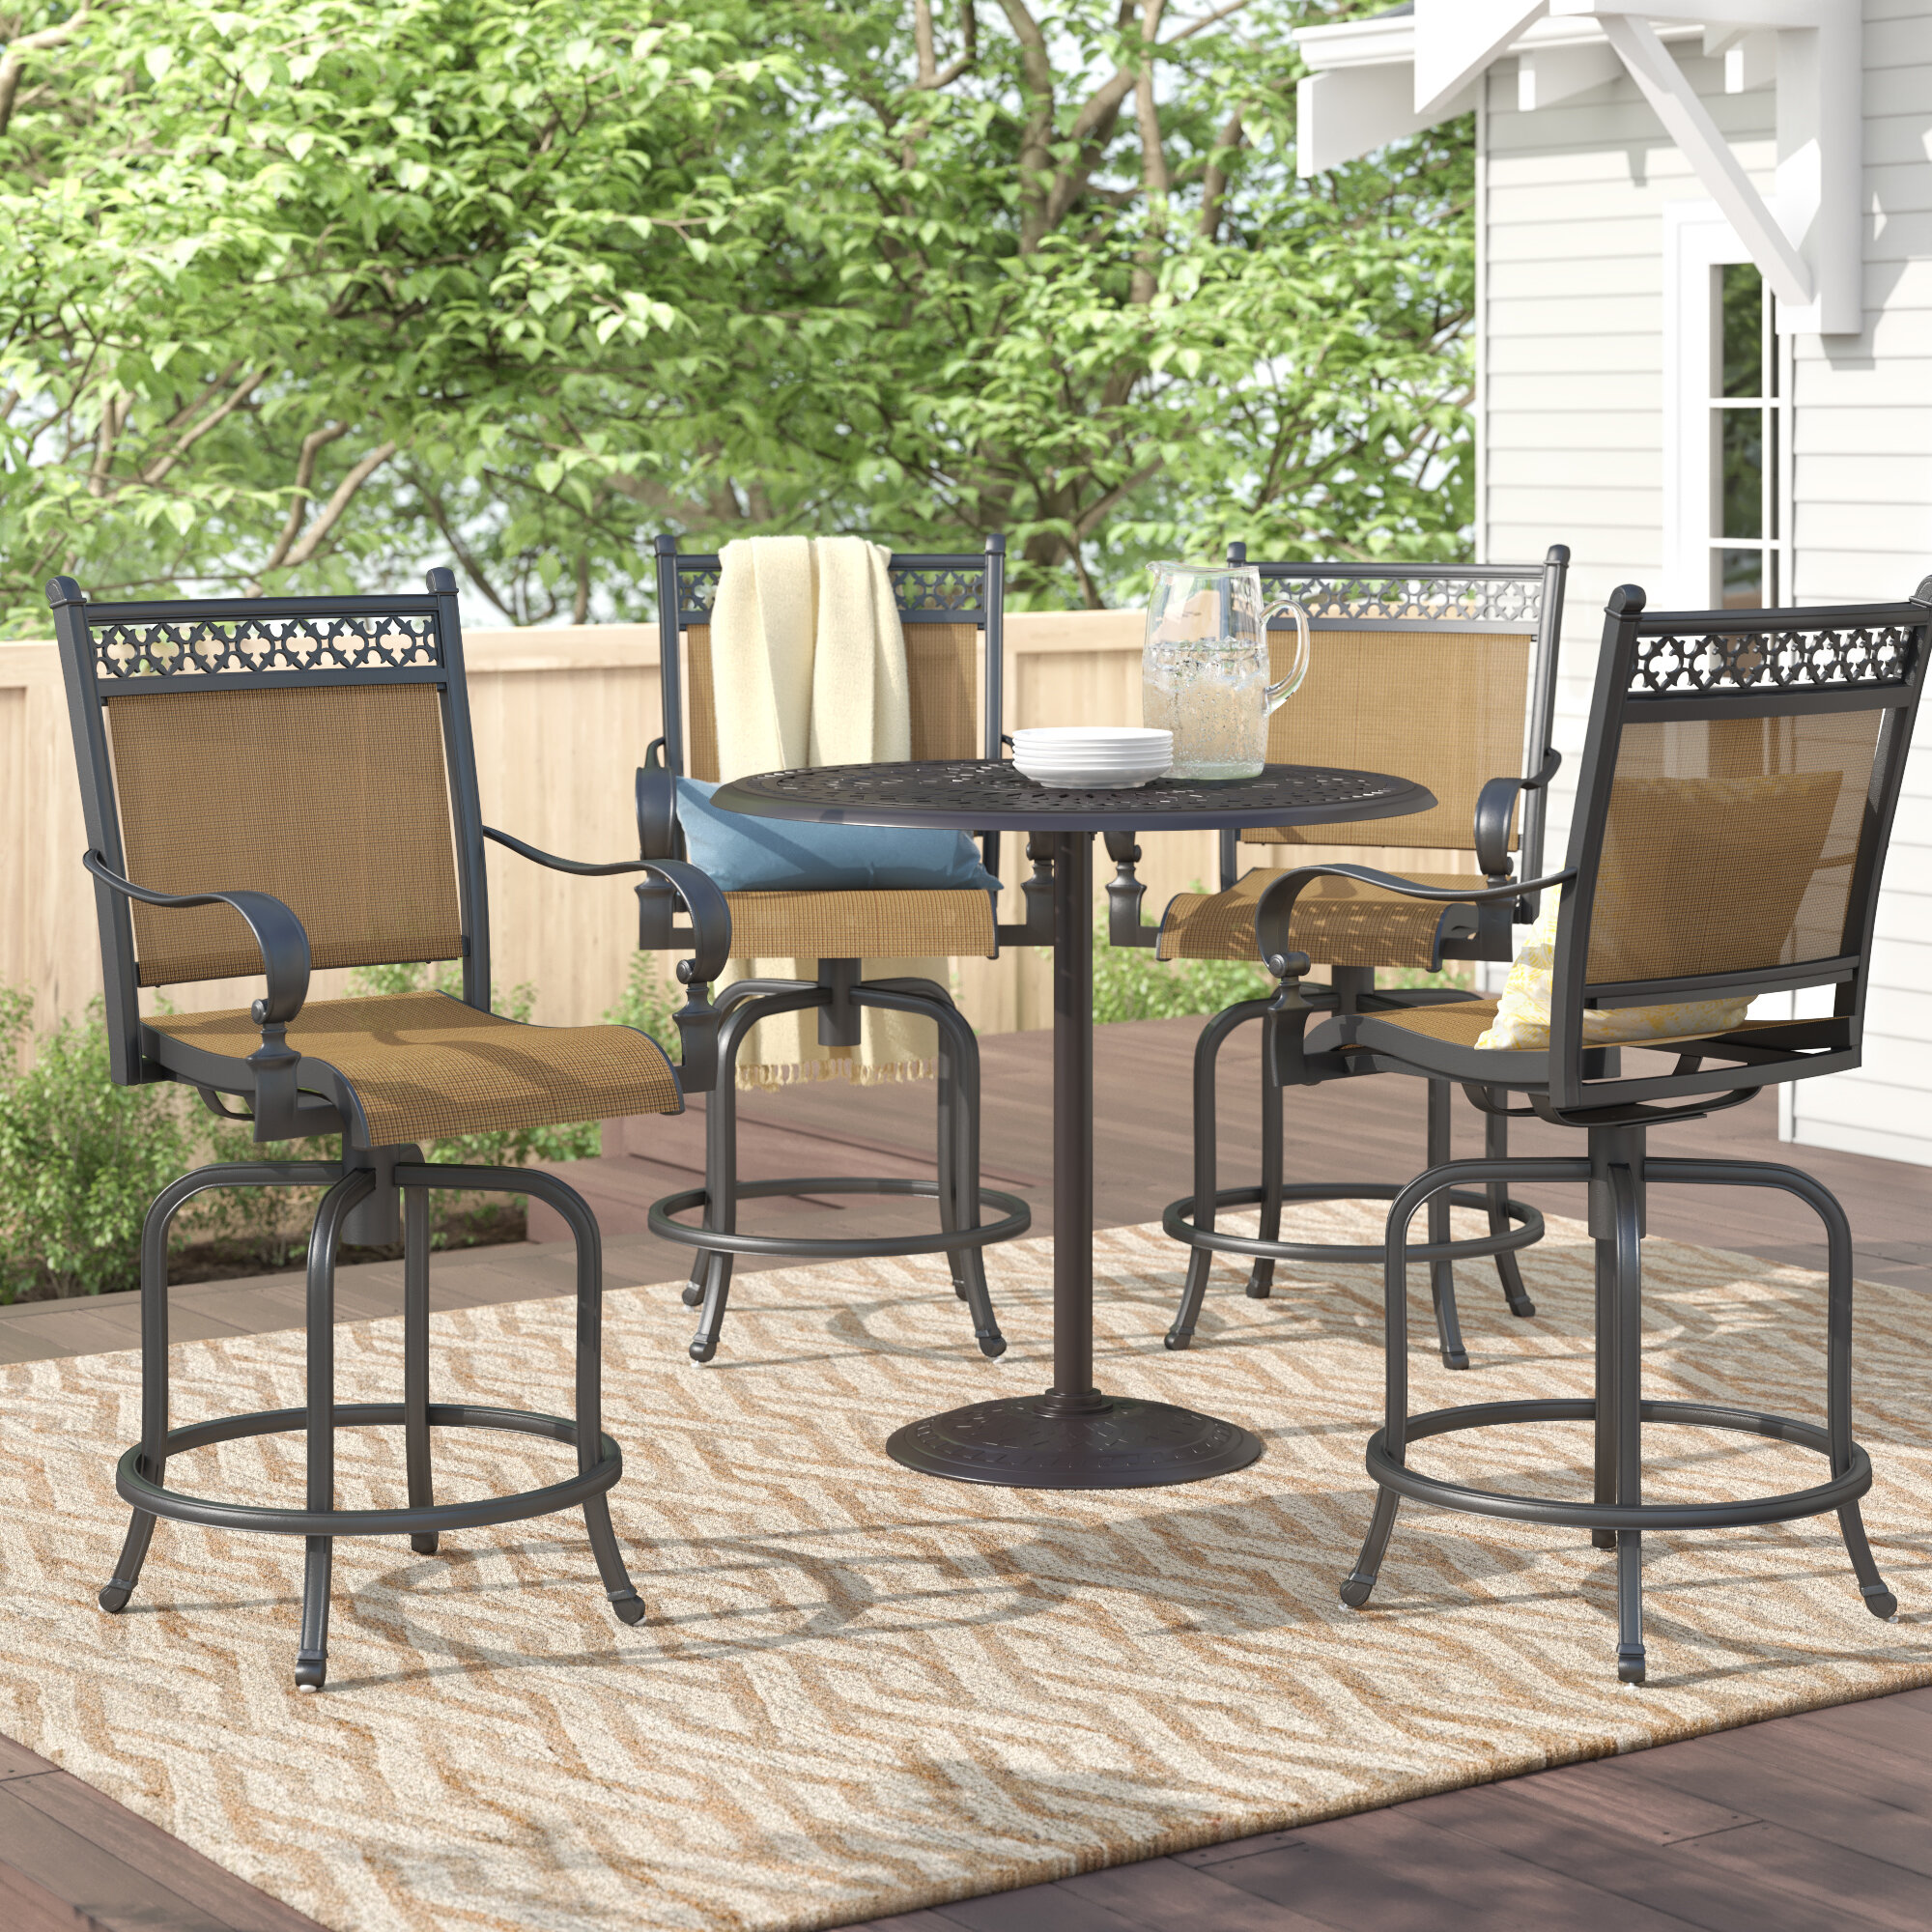 "Sol 72 Outdoor Curacao Swivel 30"" Patio Bar Stool 